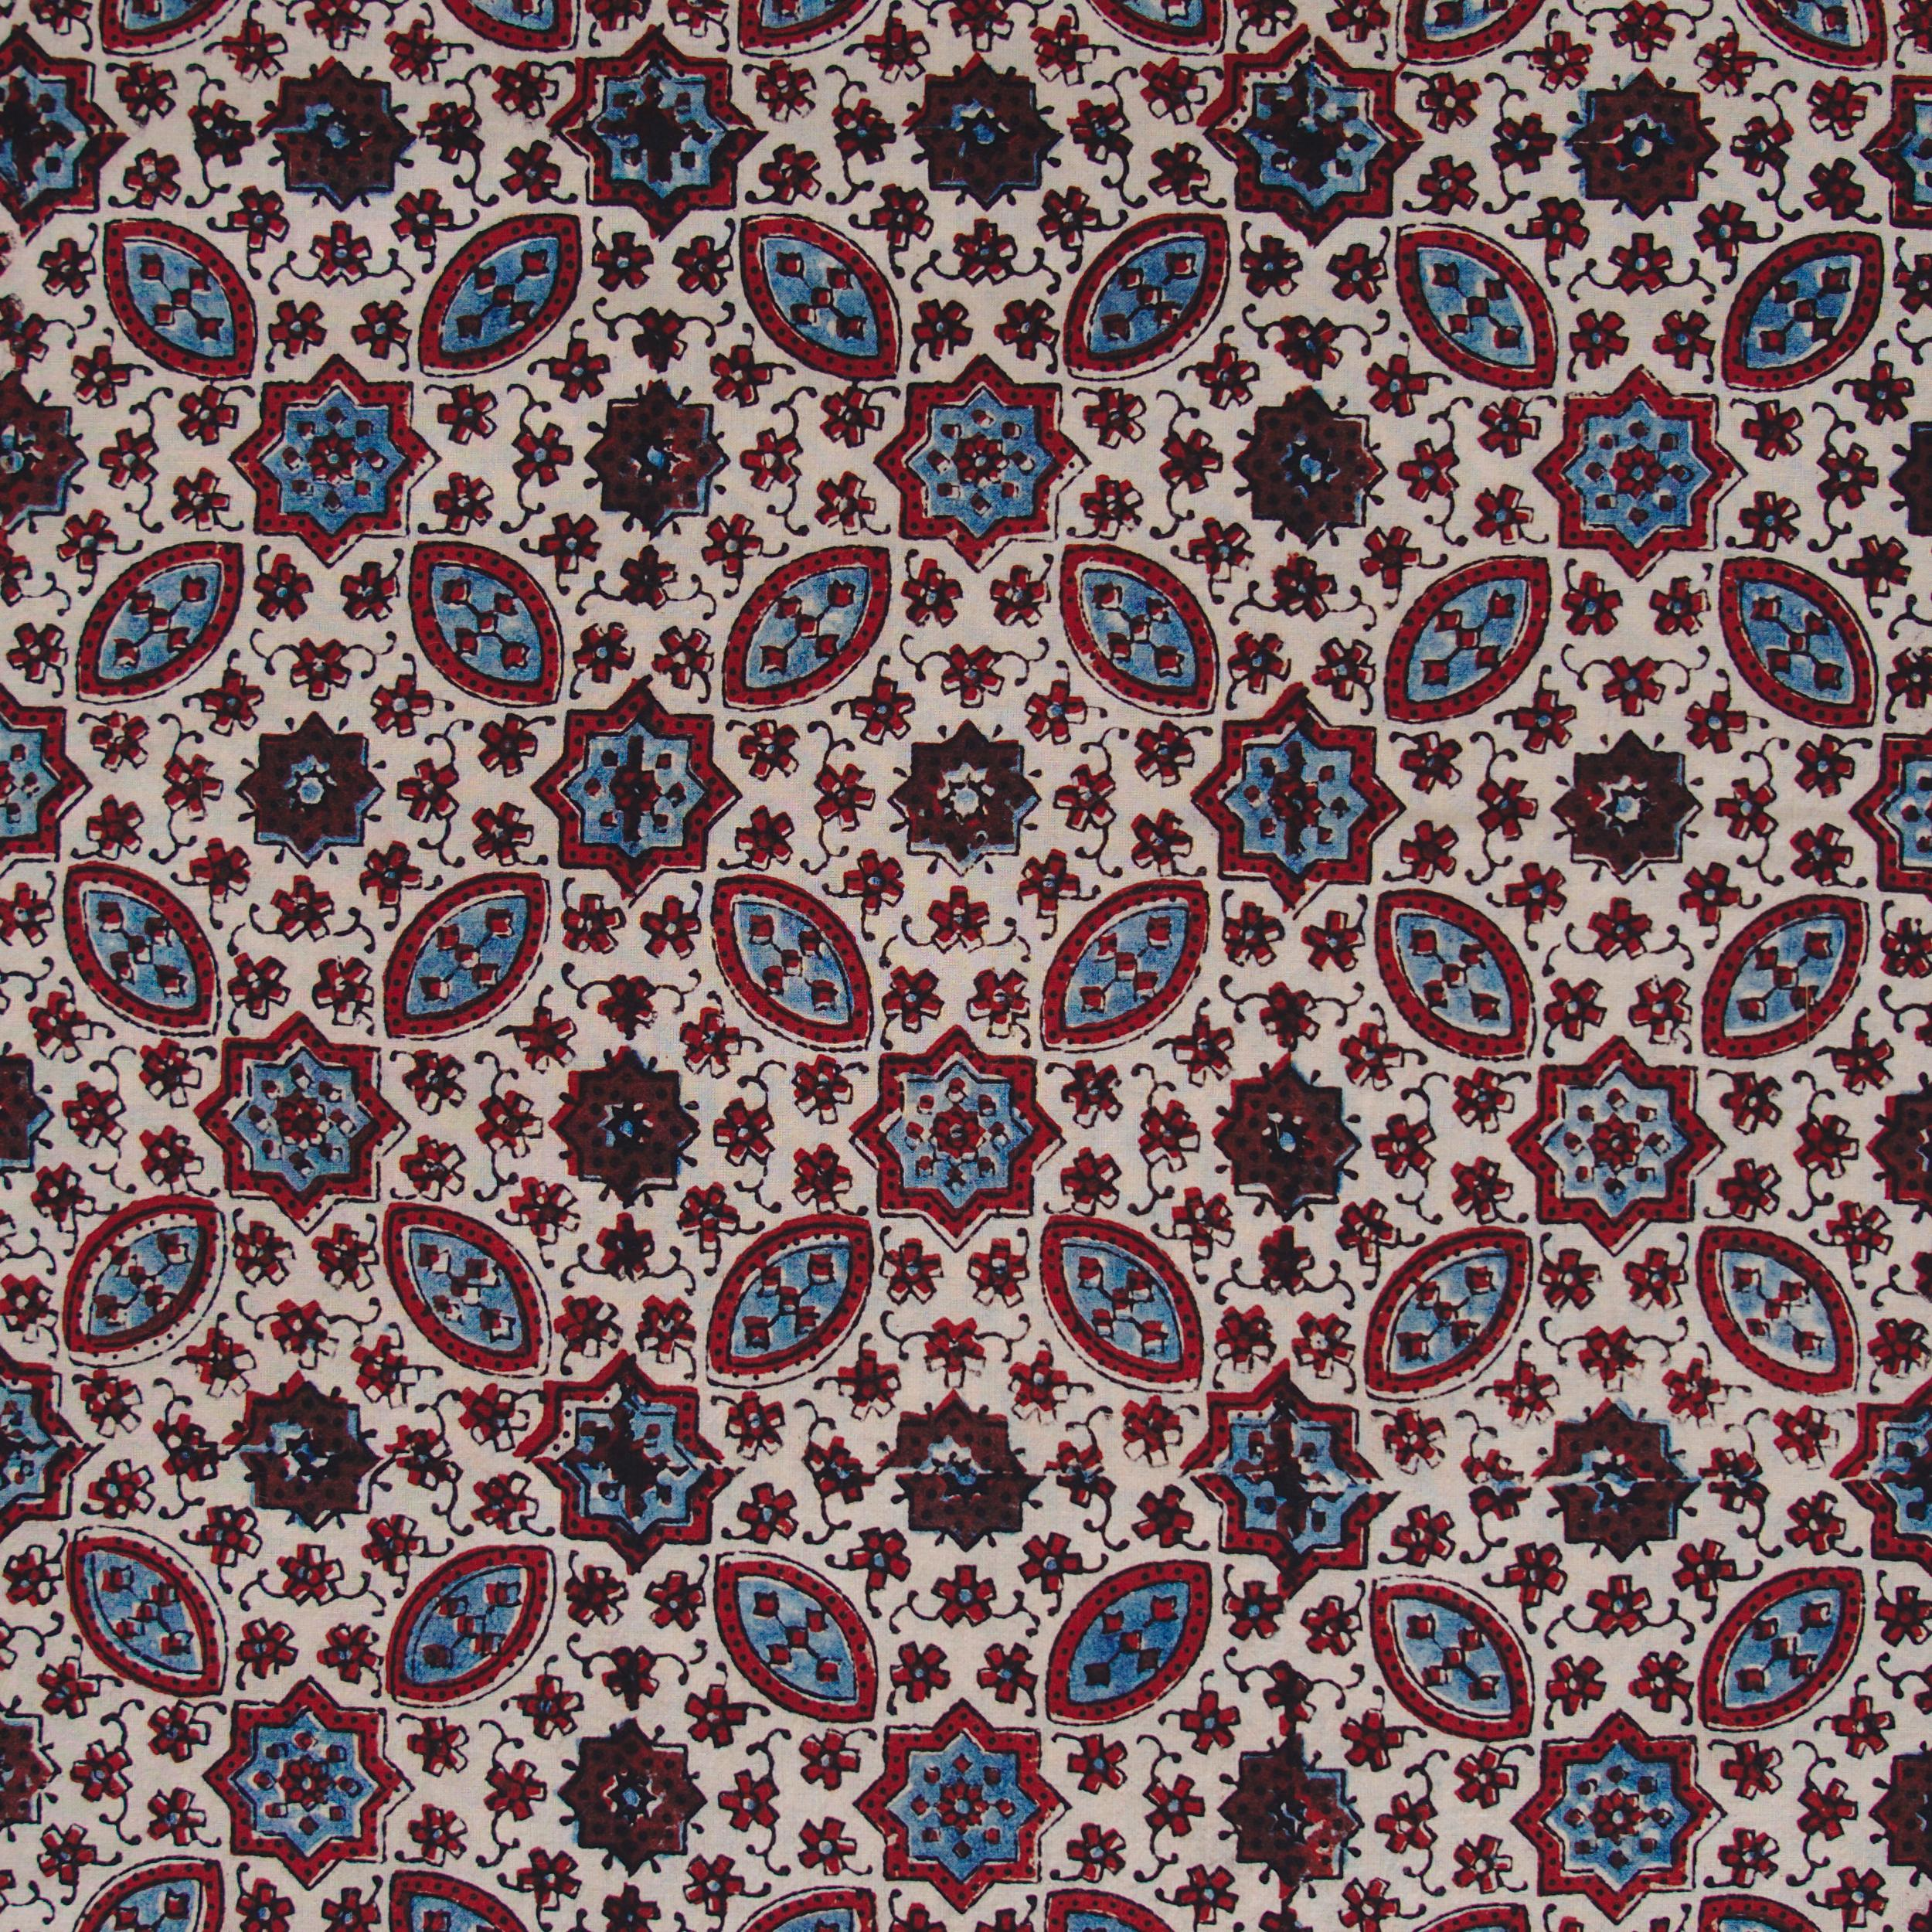 SIK33 - Indian Block-Printed Cotton - Murmurations Design - Indigo, Red & Black Dye - Flat